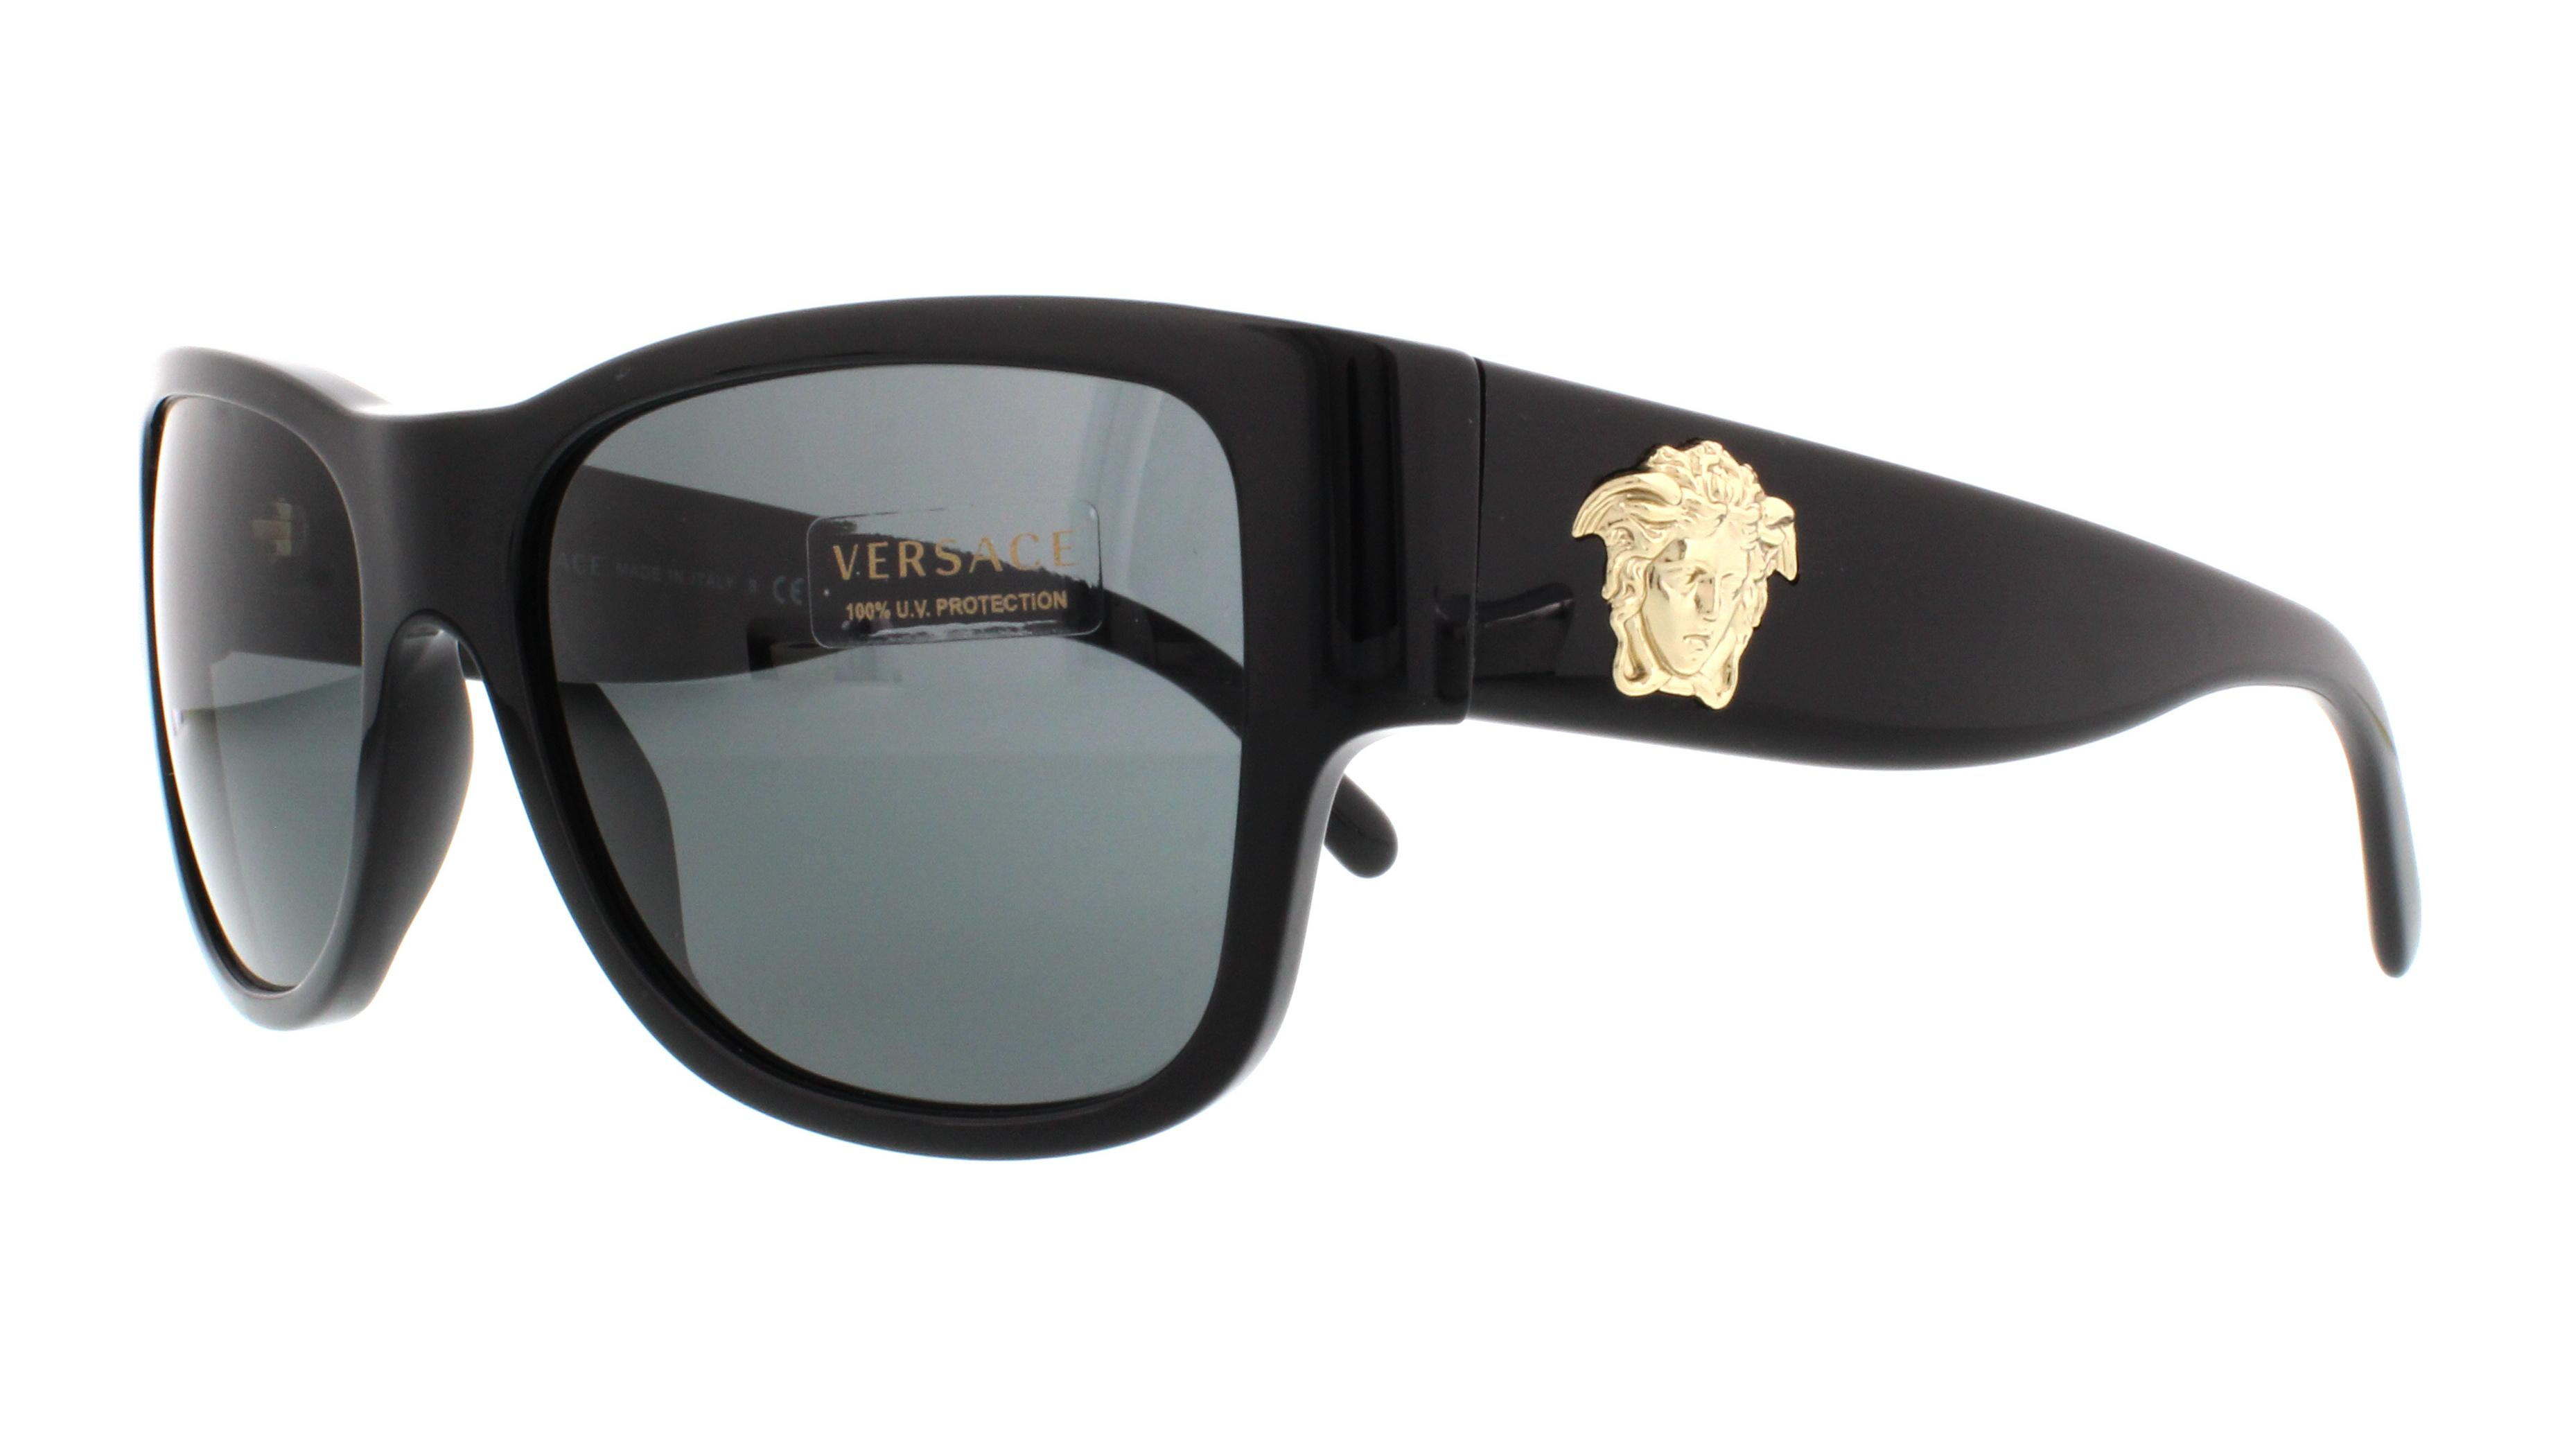 Designer Frames Outlet. Versace VE4275